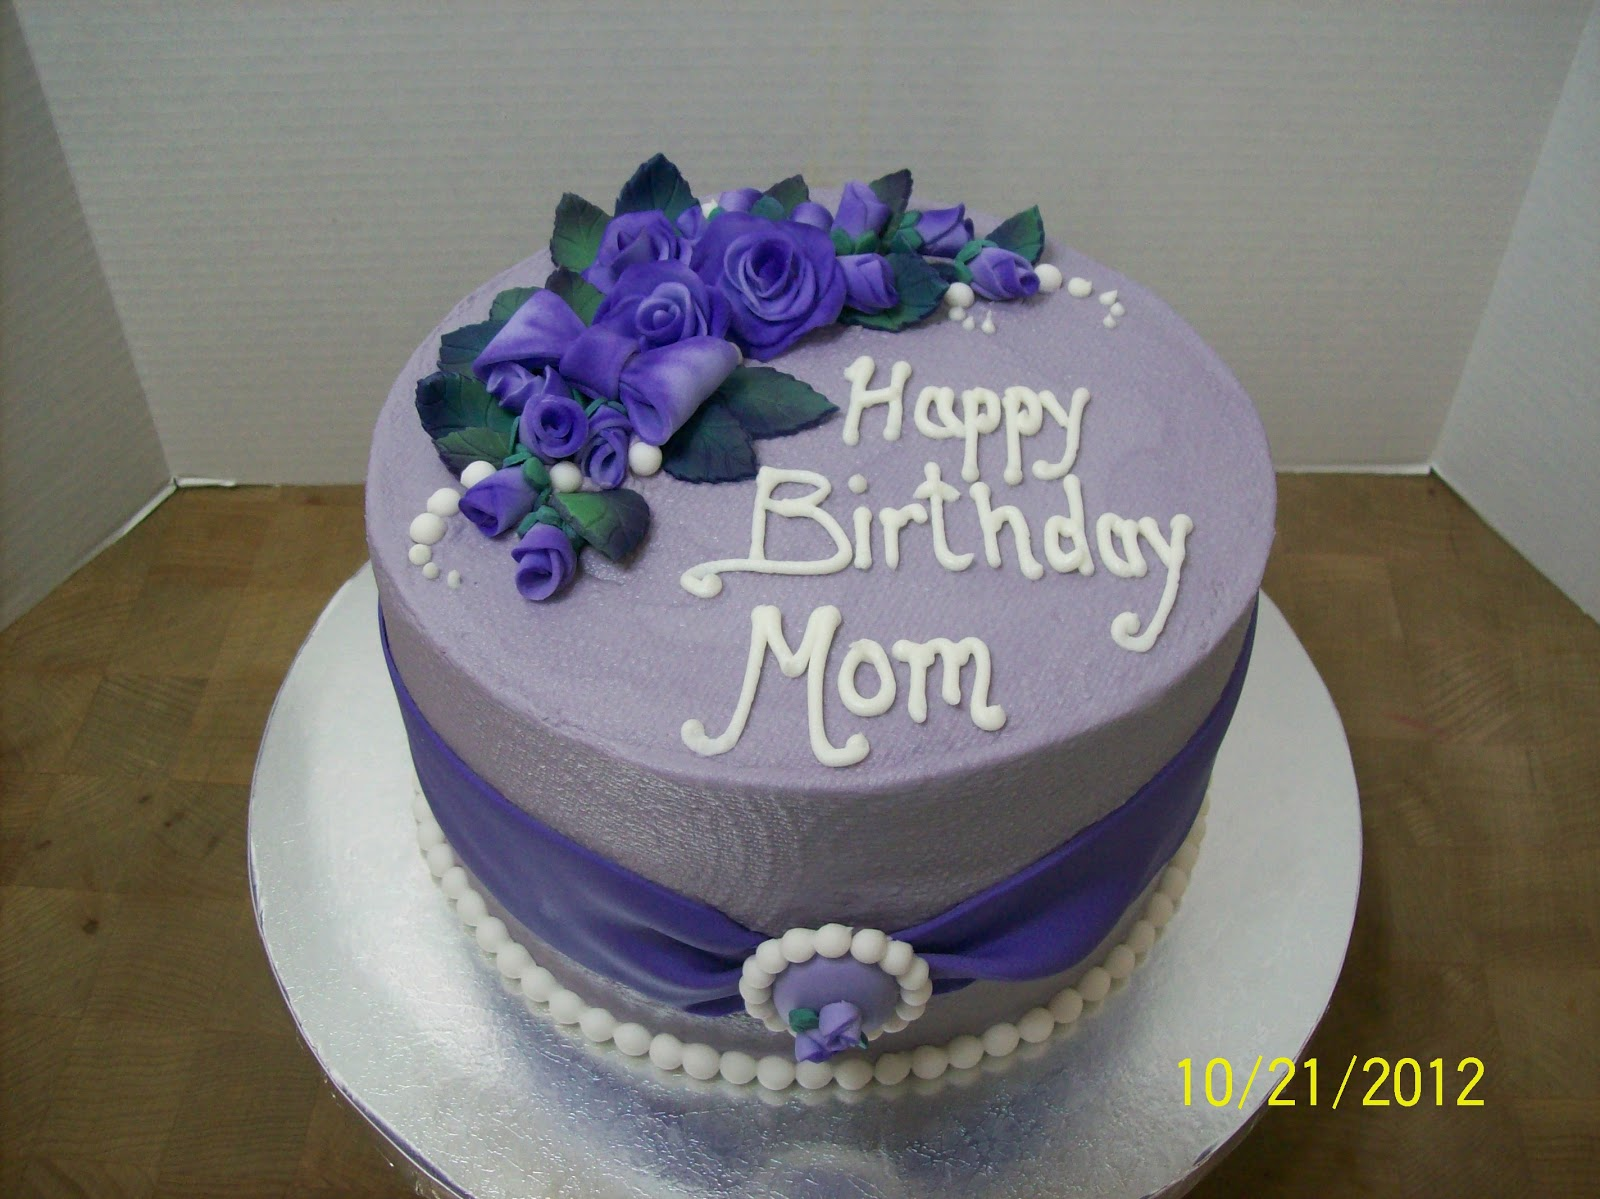 Cake Decorations For Mother S Birthday : Image Gallery october birthday cakes mom